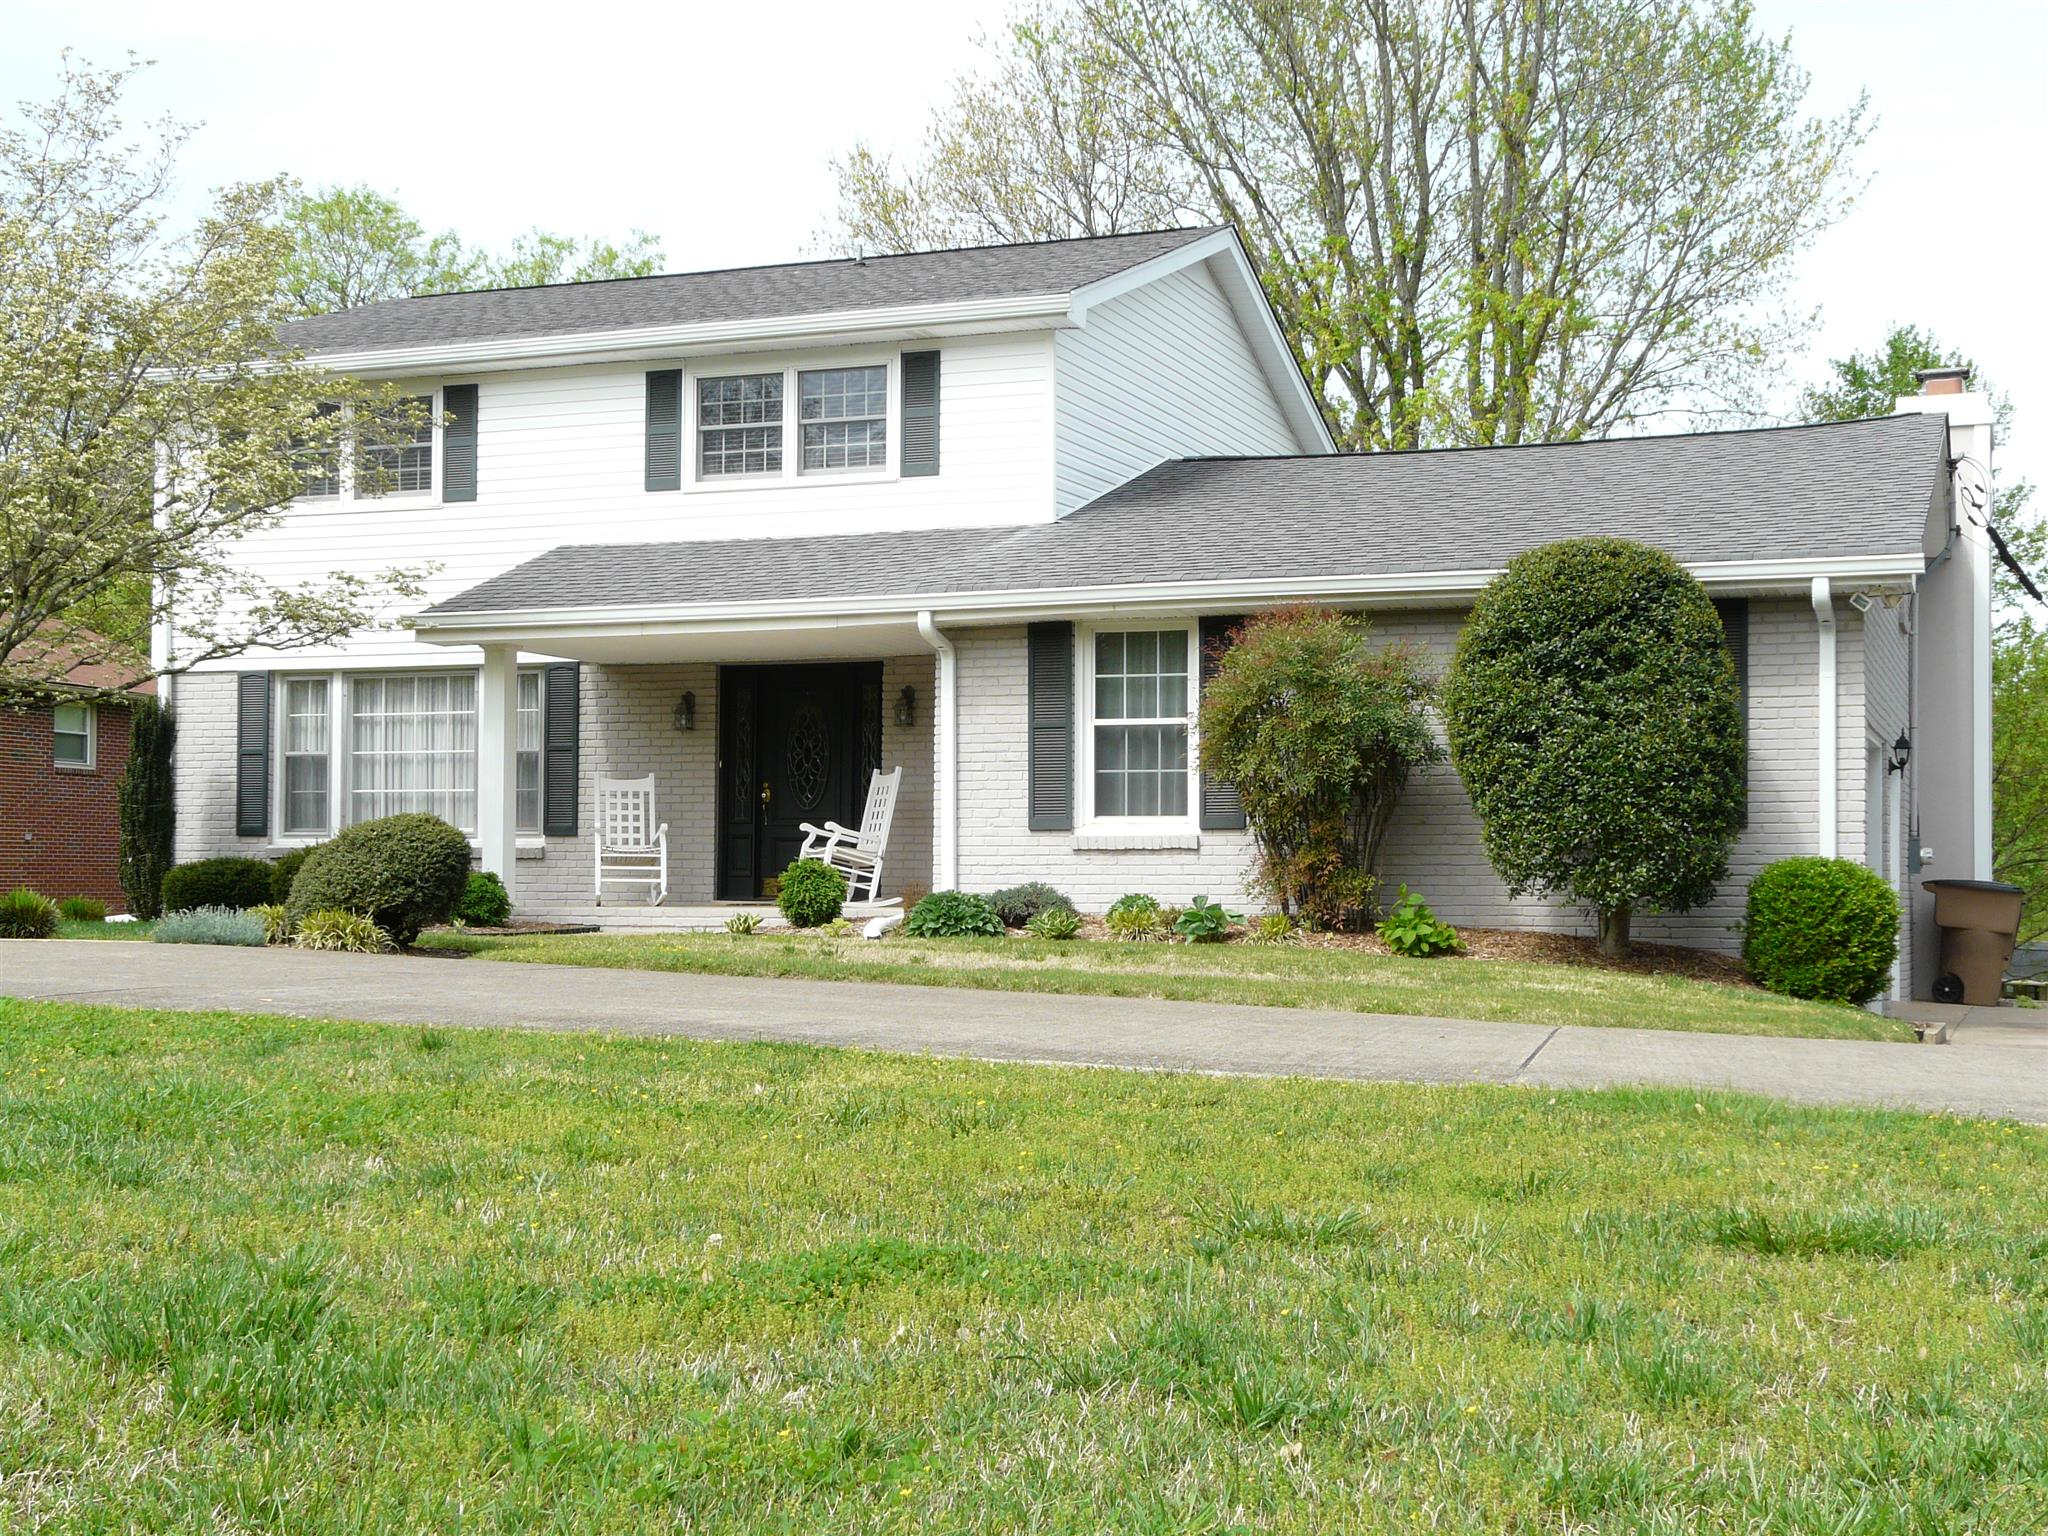 5333 Overton Rd, Crieve Hill, Tennessee 4 Bedroom as one of Homes & Land Real Estate